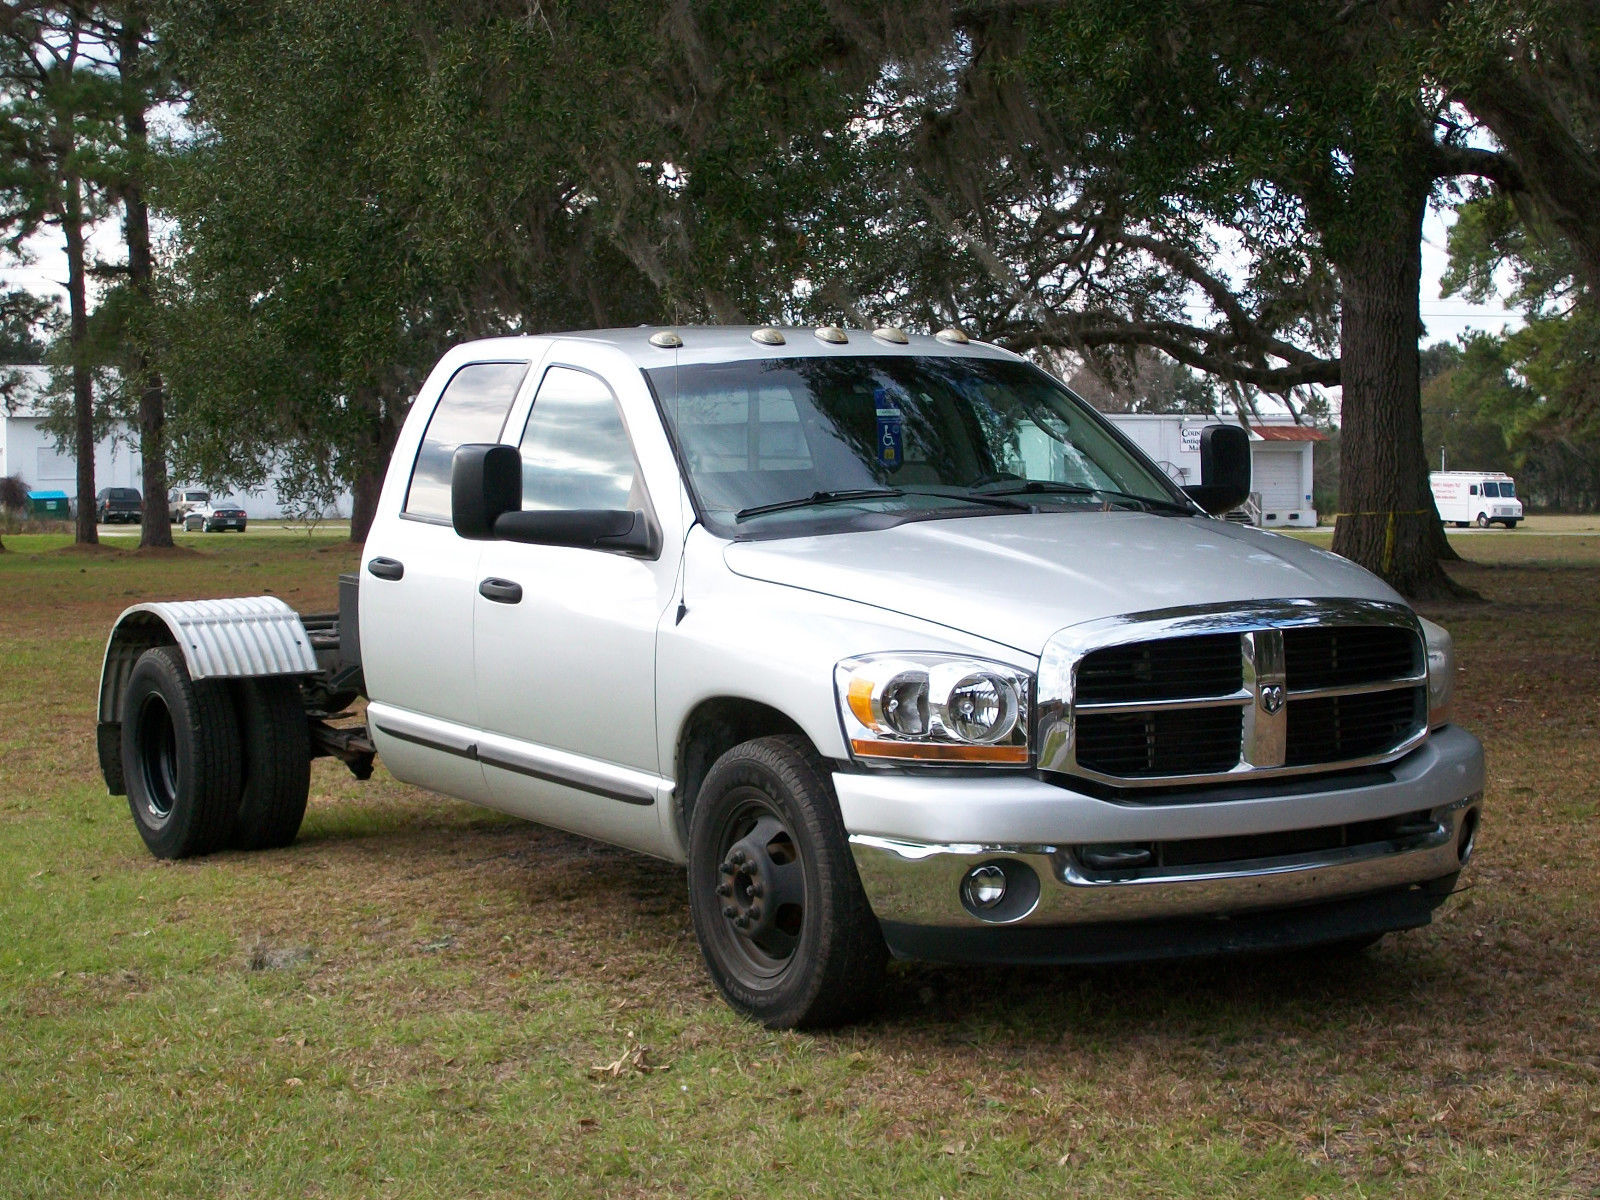 2006 dodge ram 3500 crew cab 5 9 diesel tow monster for sale. Cars Review. Best American Auto & Cars Review